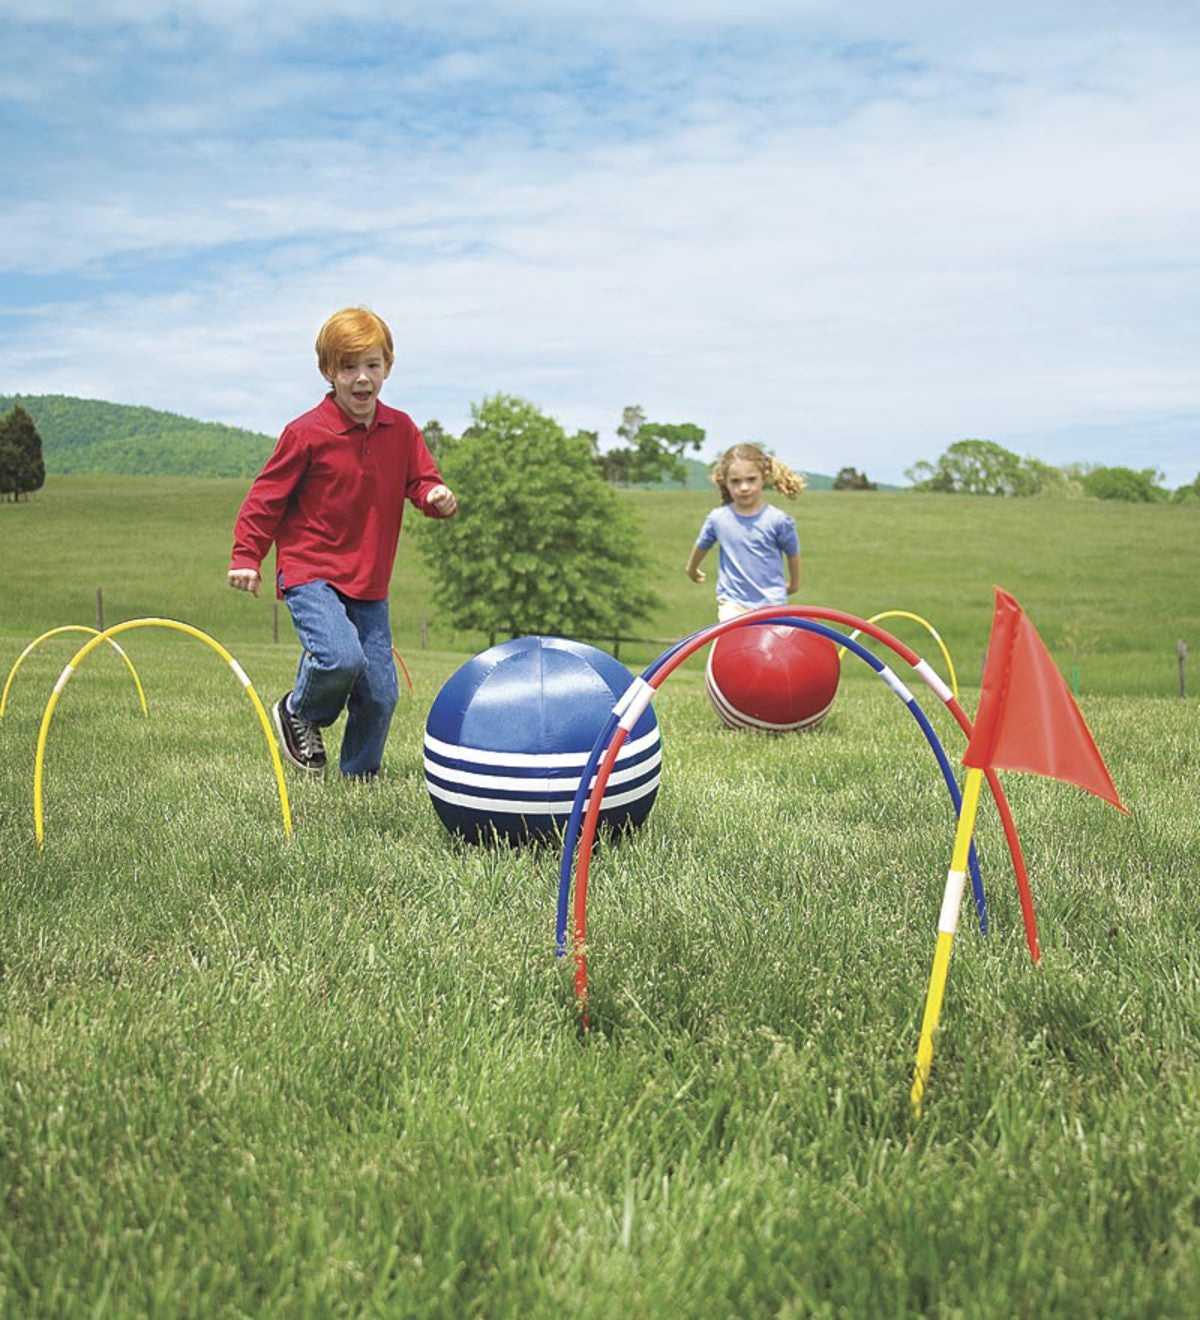 Kick Croquet Kids' Outdoor Game